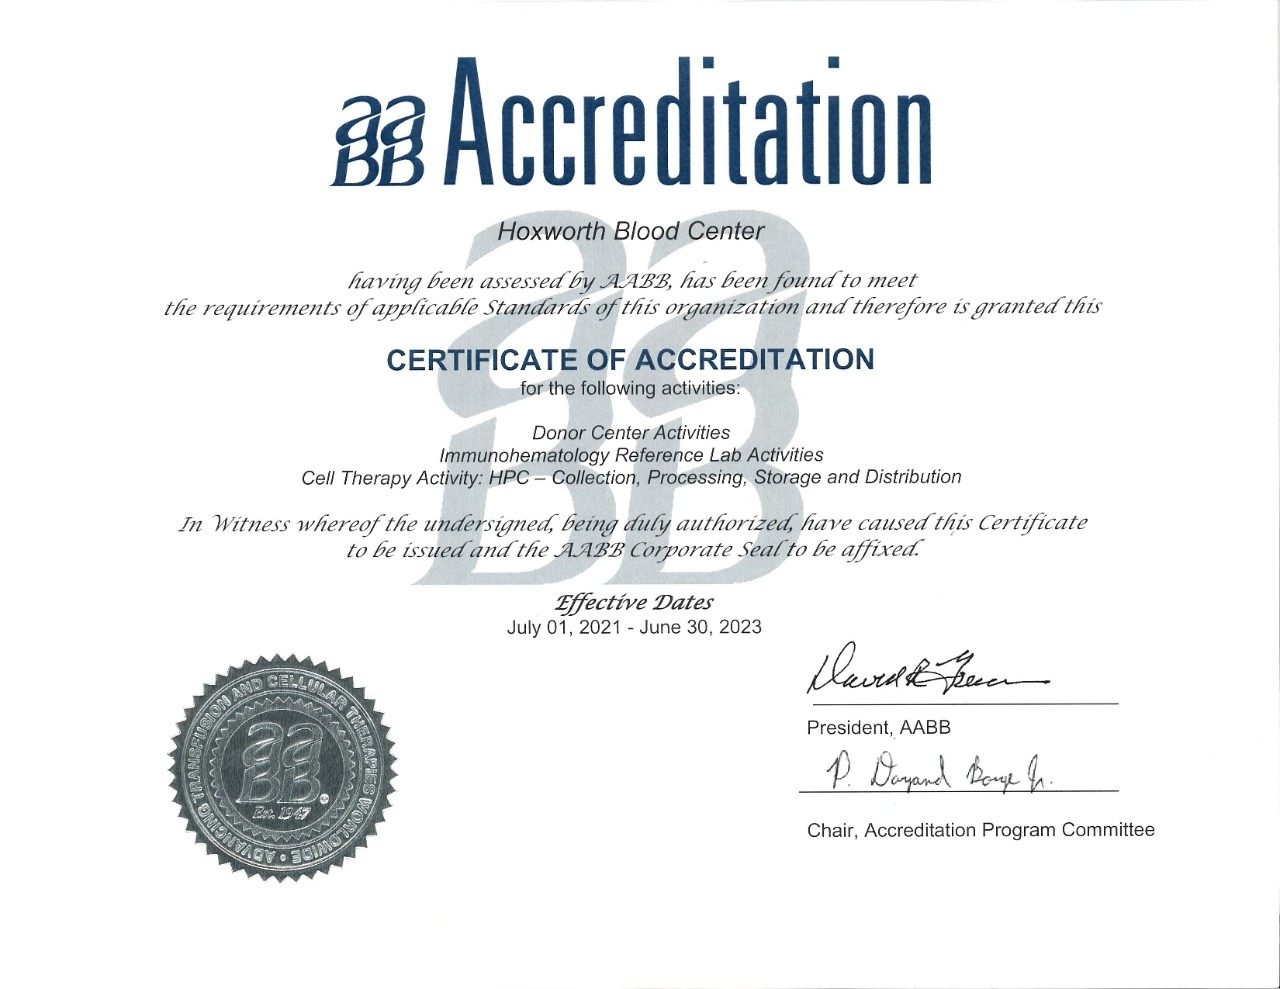 AABB Accreditation for Hoxworth Blood Center